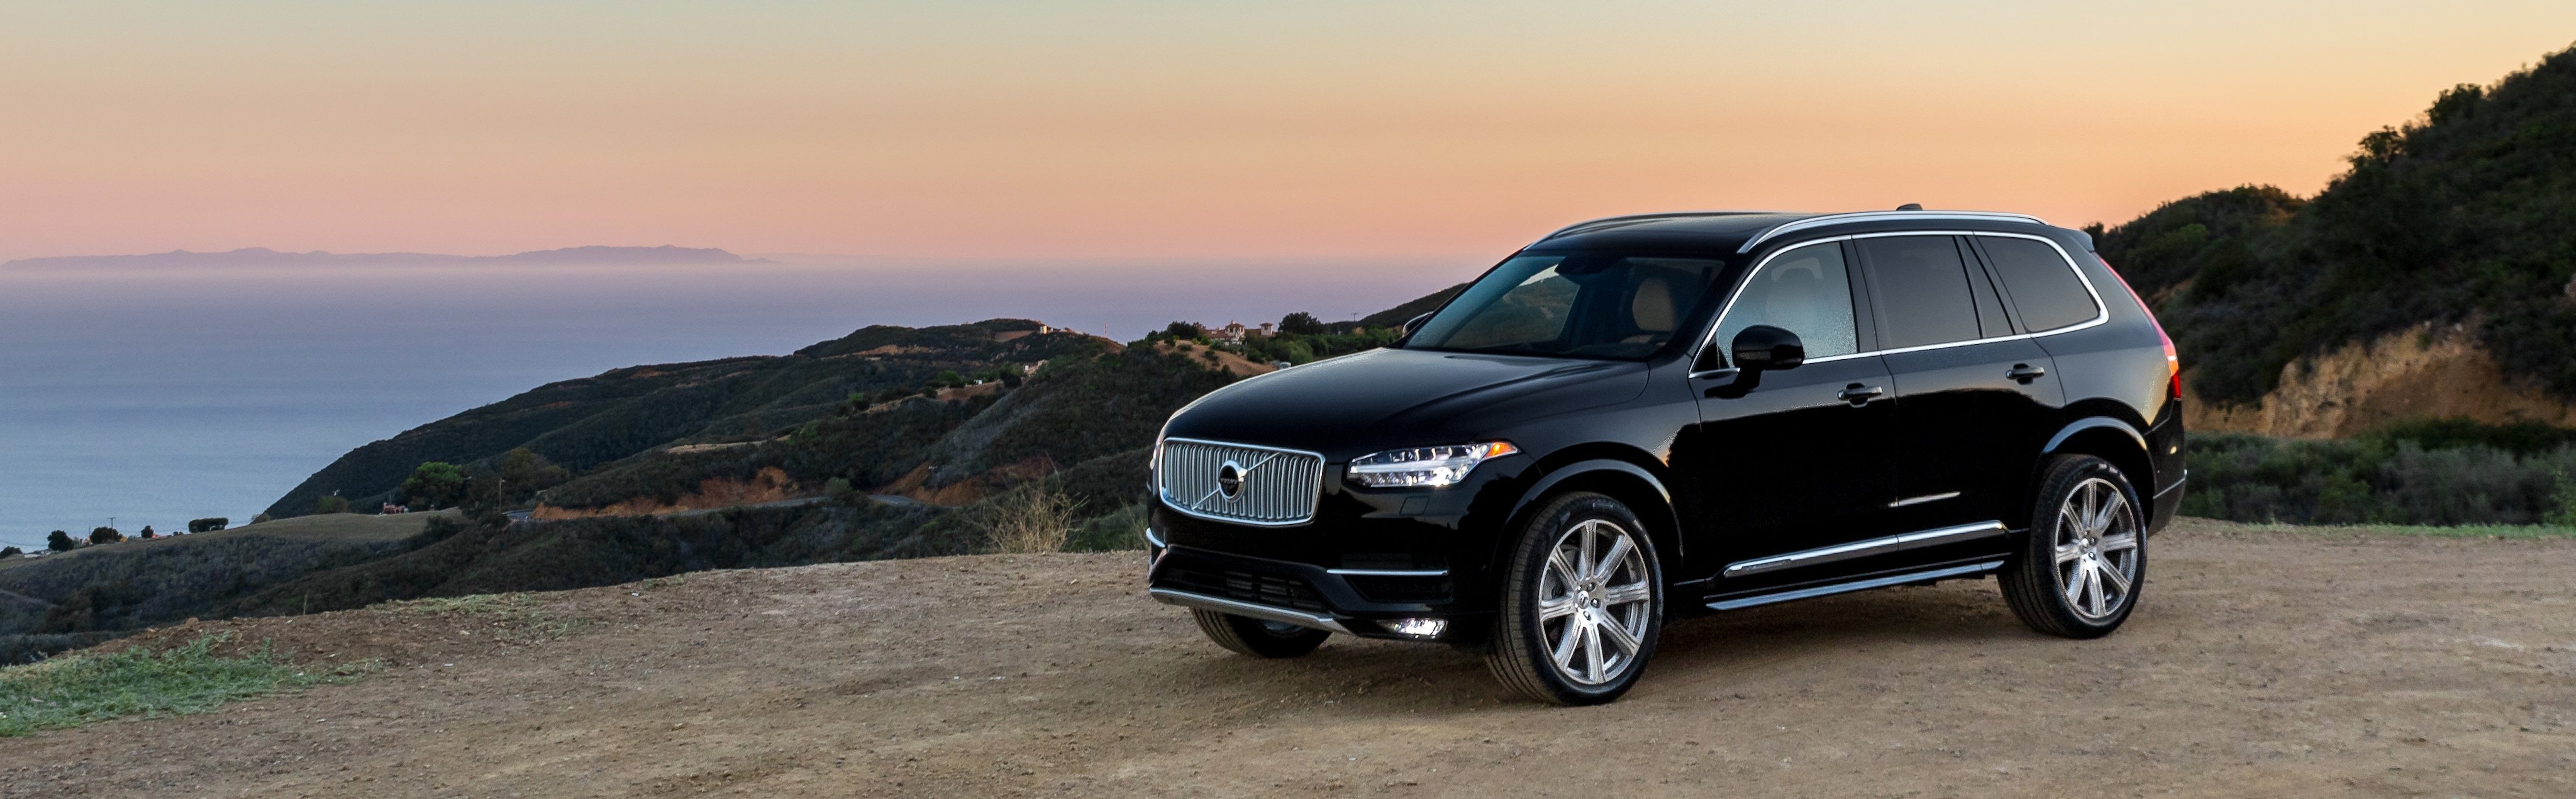 Volvo Car USA Military Offer available at  Culver City Volvo Cars in Los Angeles